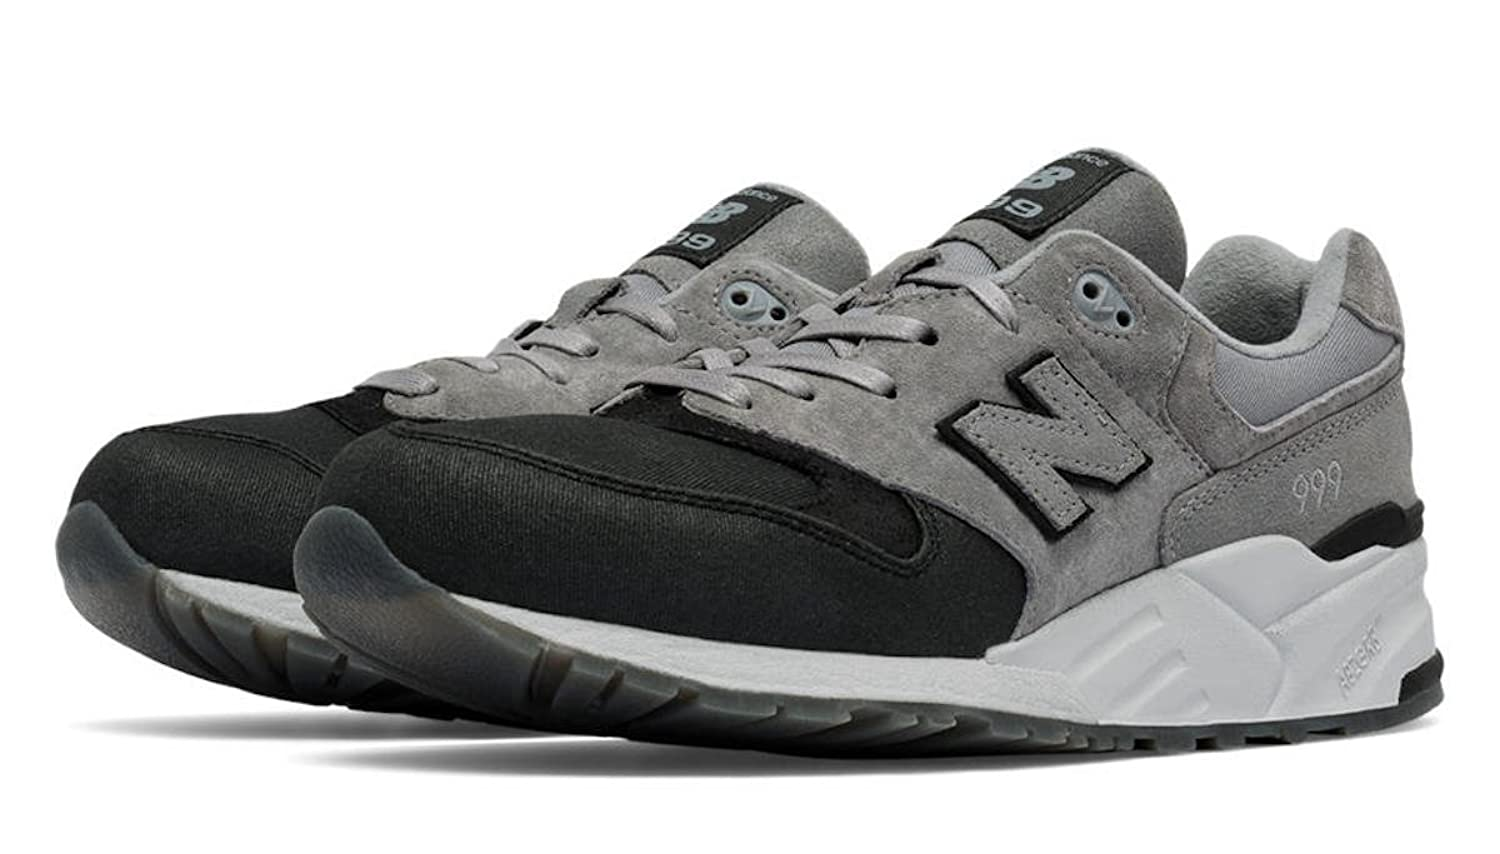 New Balance Men's ML999WXA Canvas Waxed Classic Running Shoes B01CYYPGQC 7.5 D(M) US